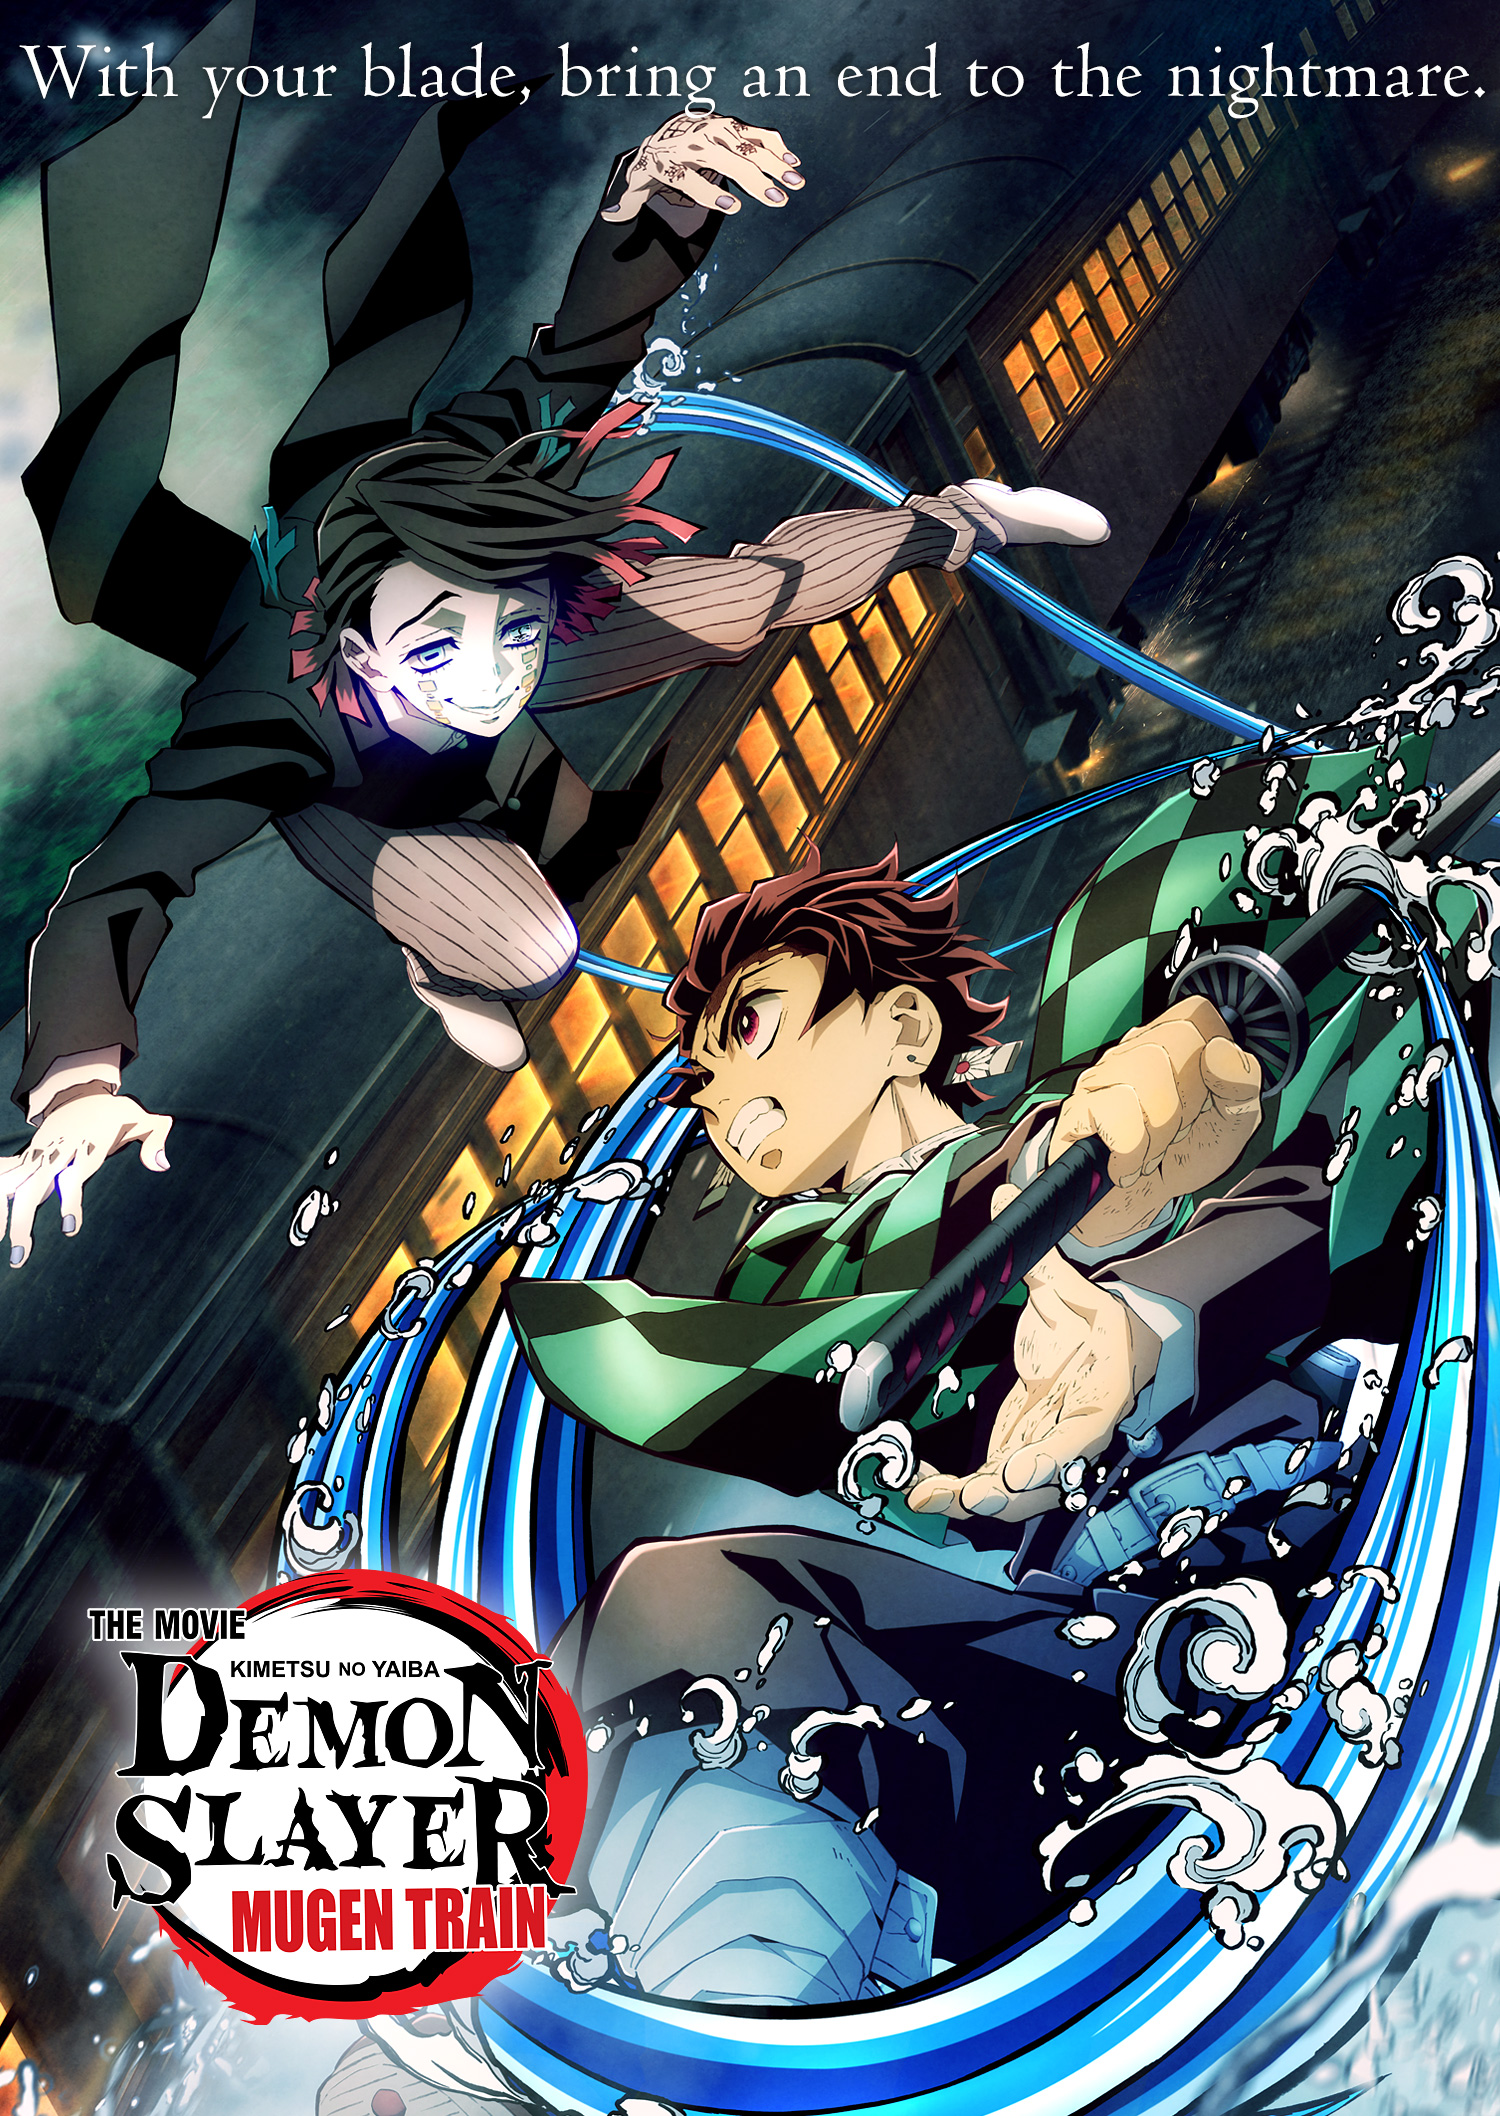 Demon Slayer -Kimetsu no Yaiba- La película: Mugen Train